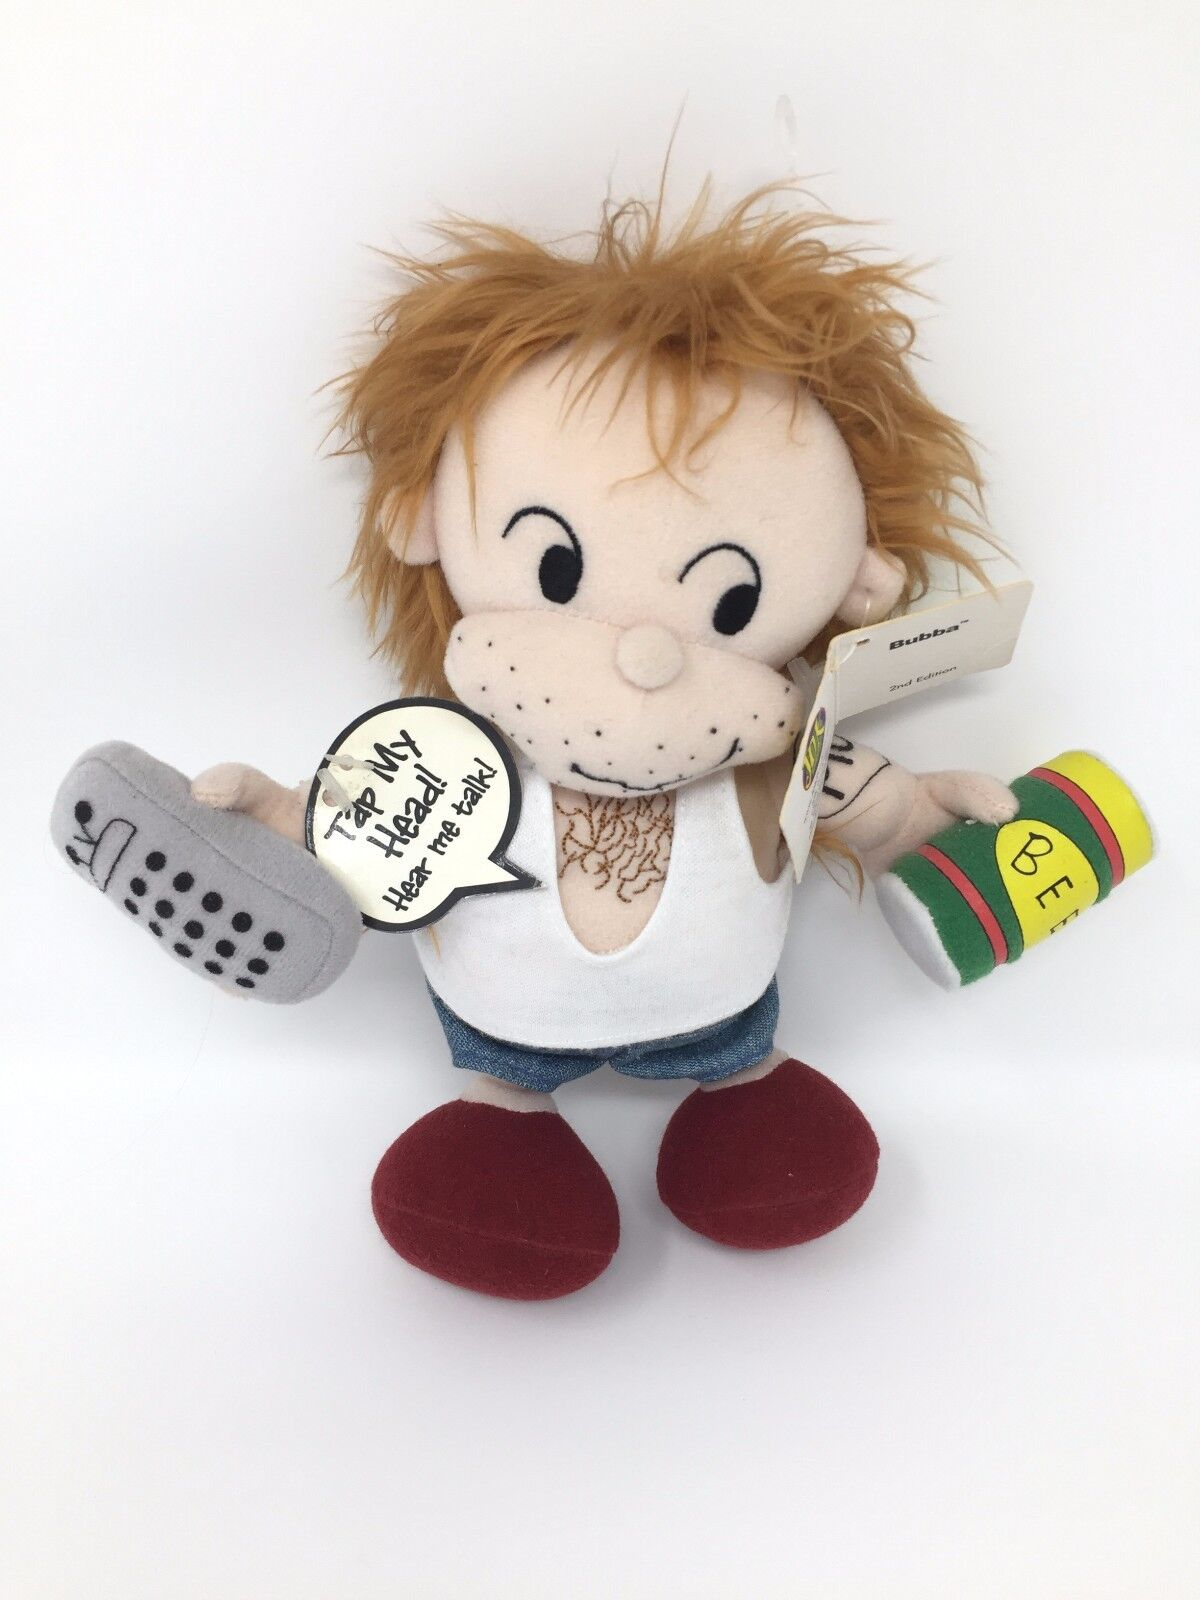 RARE COLLECTIBLE 2nd Edition Trash Talkers Doll Bubba Adult Toy